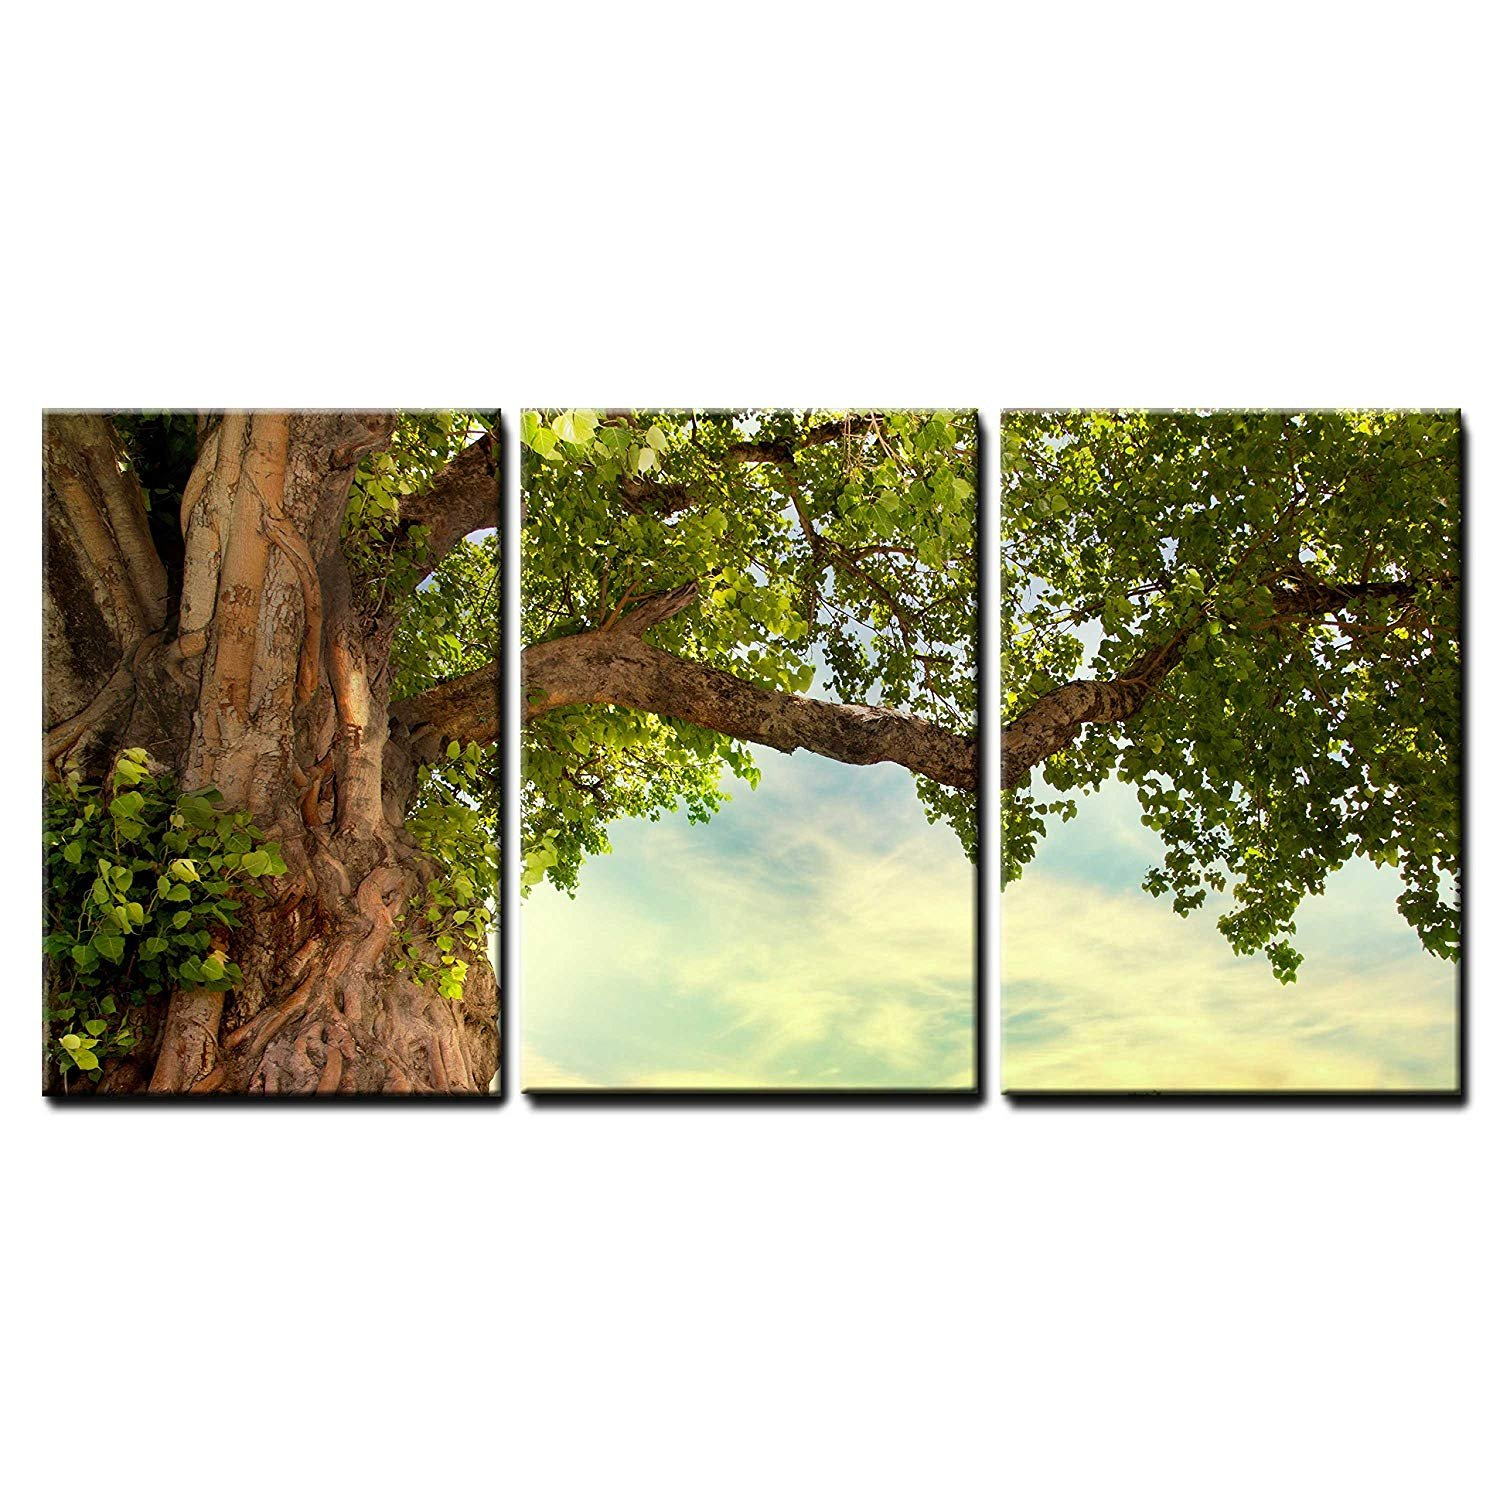 3 Piece Canvas Wall Art - Spring Meadow with Big Tree with Fresh Green Leaves - Modern Home Art Stretched and Framed Ready to Hang - 24